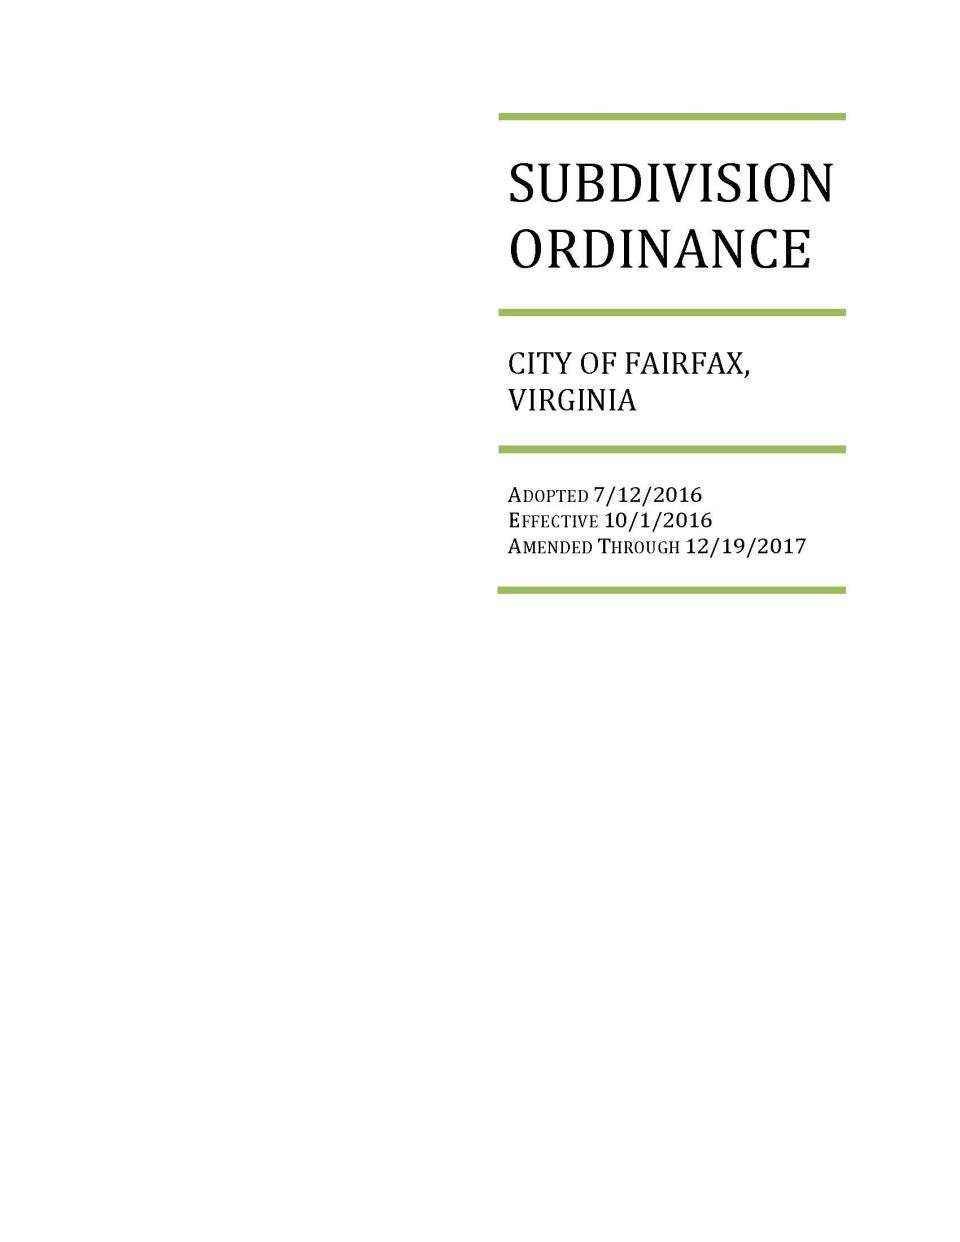 Subdivision Ordinance